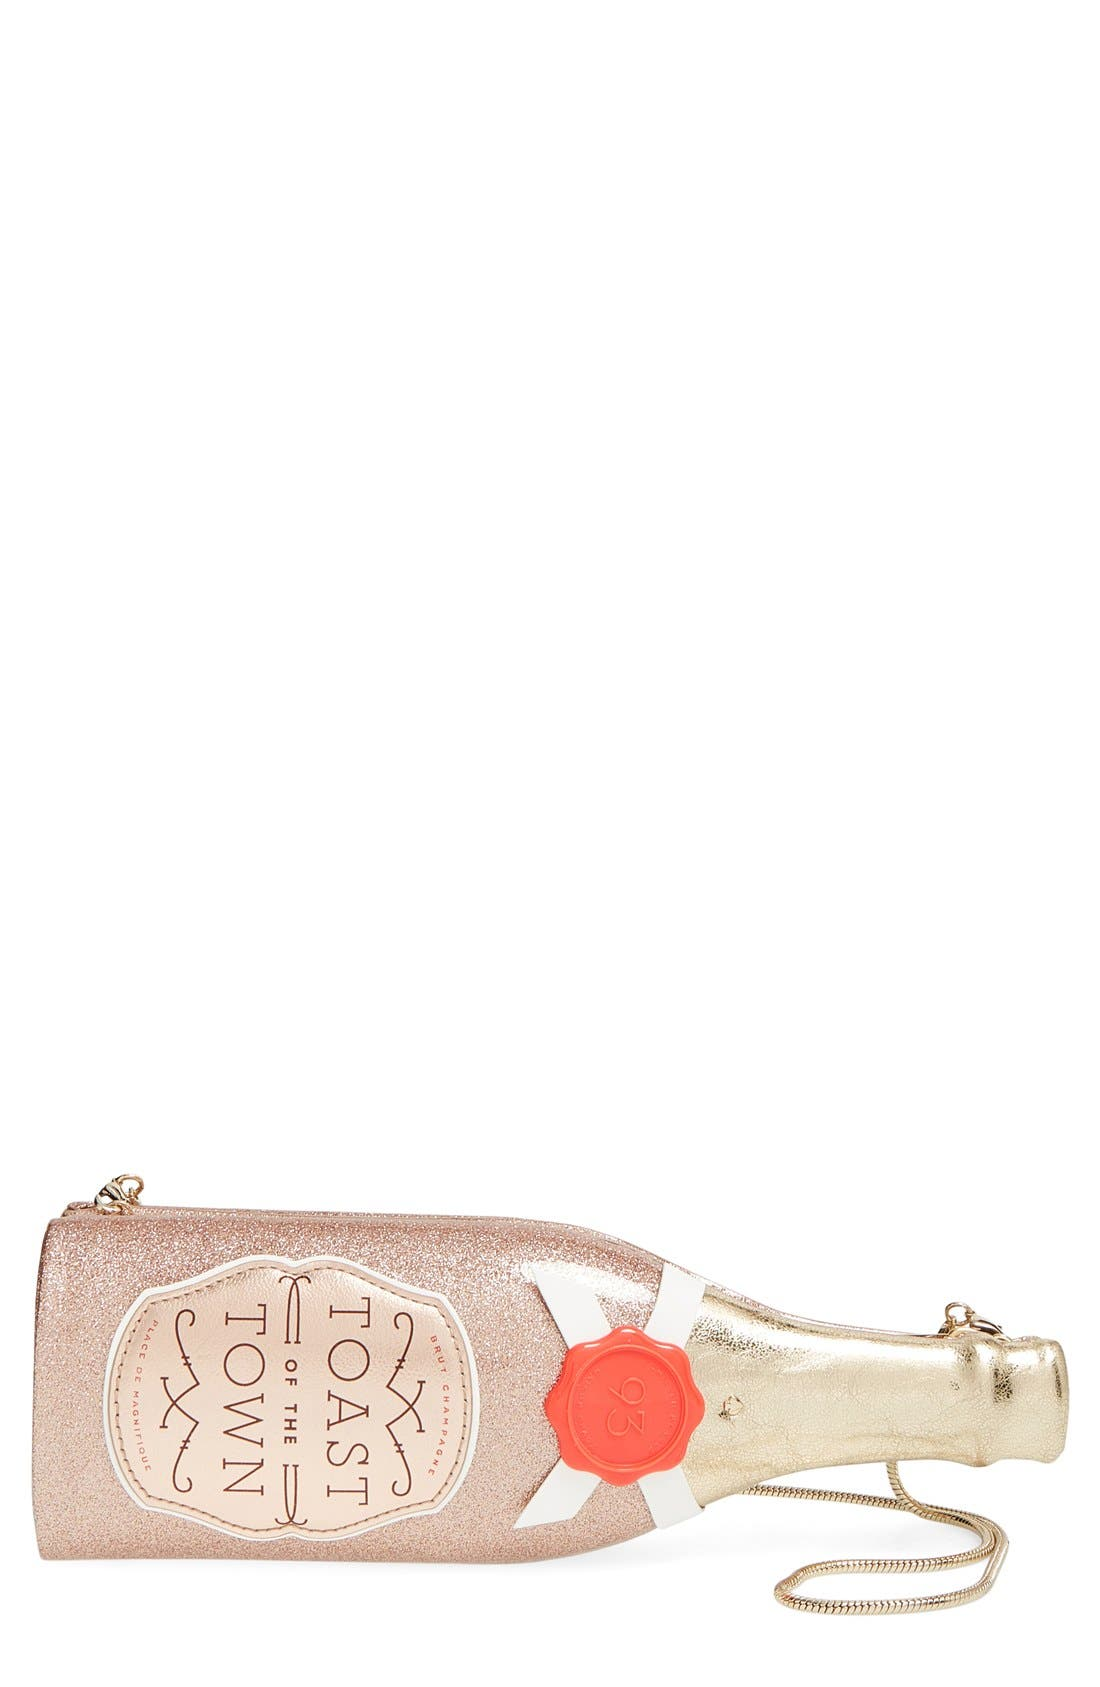 Main Image - kate spade new york 'champagne bottle' clutch